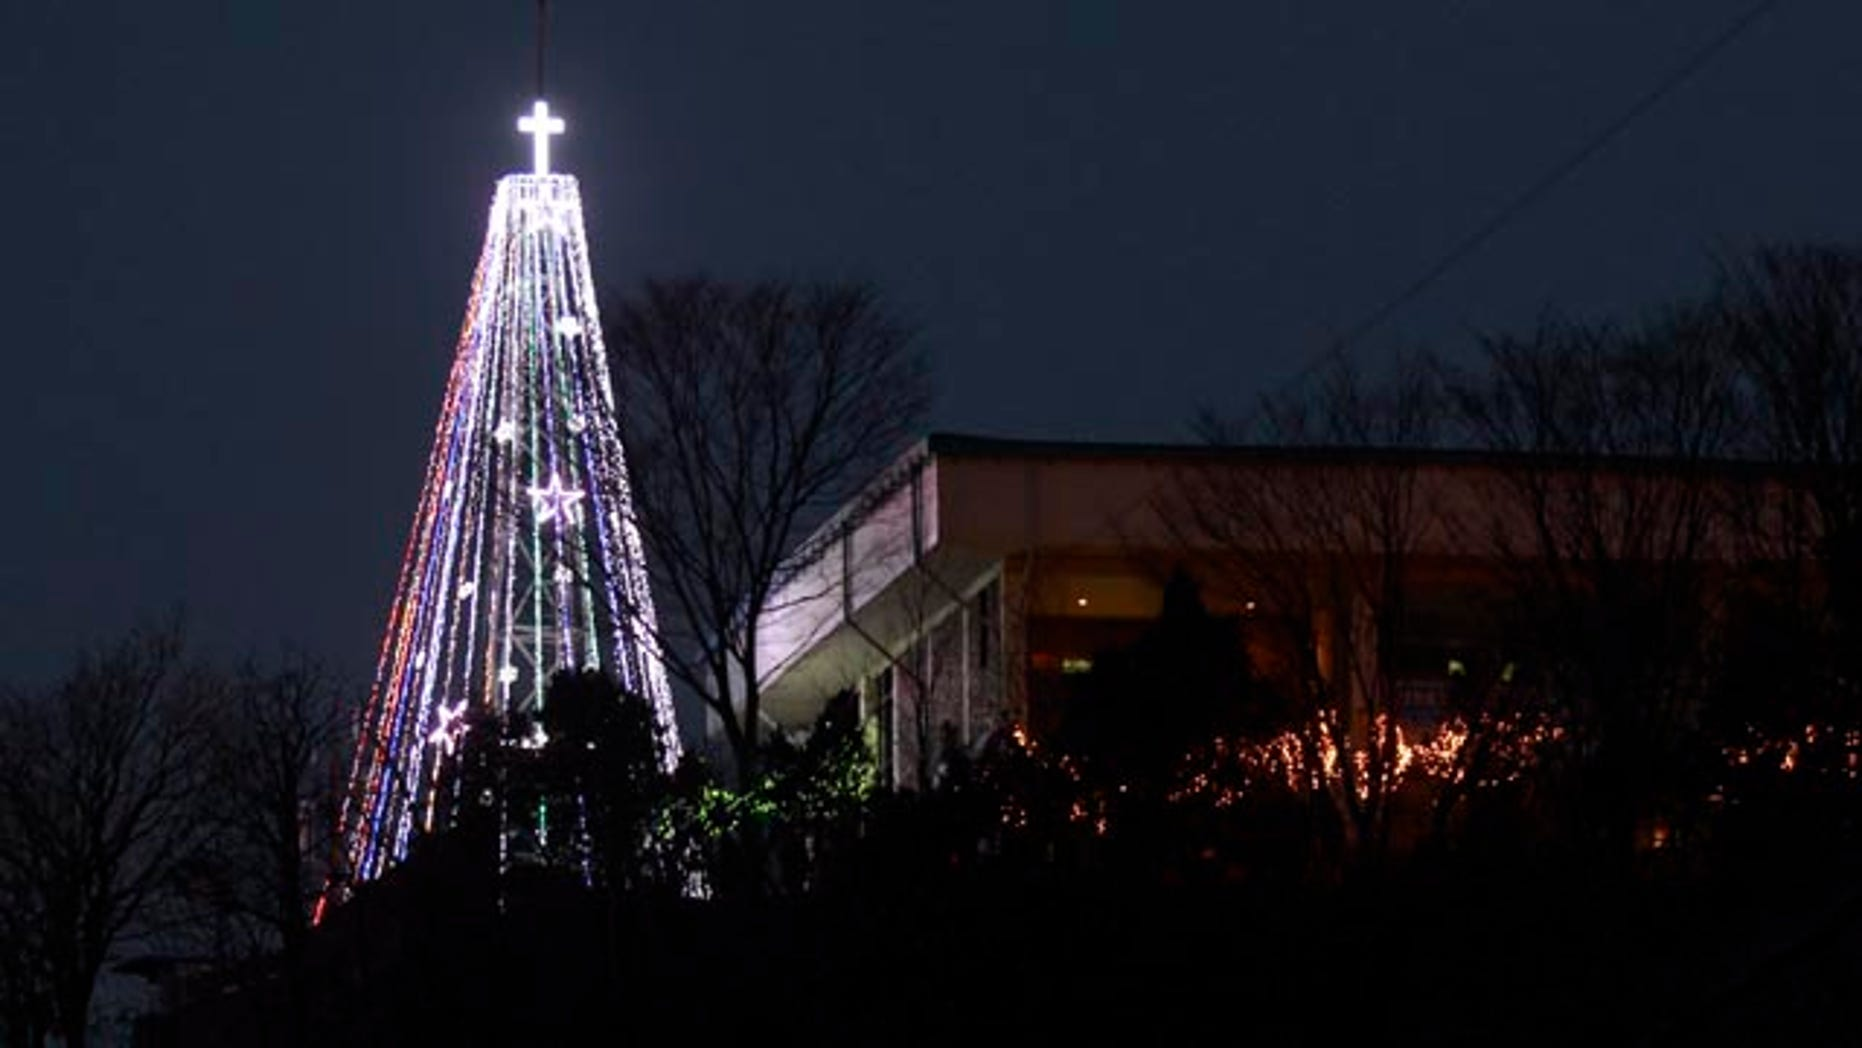 This Tuesday, Dec. 21, 2010 photo shows a giant steel Christmas tree lit up at the western mountain peak known as Aegibong in Gimpo, South Korea. South Korean military officials said they pulled down the tree near the country's heavily-armed border with North Korea at a time when the countries are pursuing better ties after months of animosity. (AP Photo/Lee Jin-man)